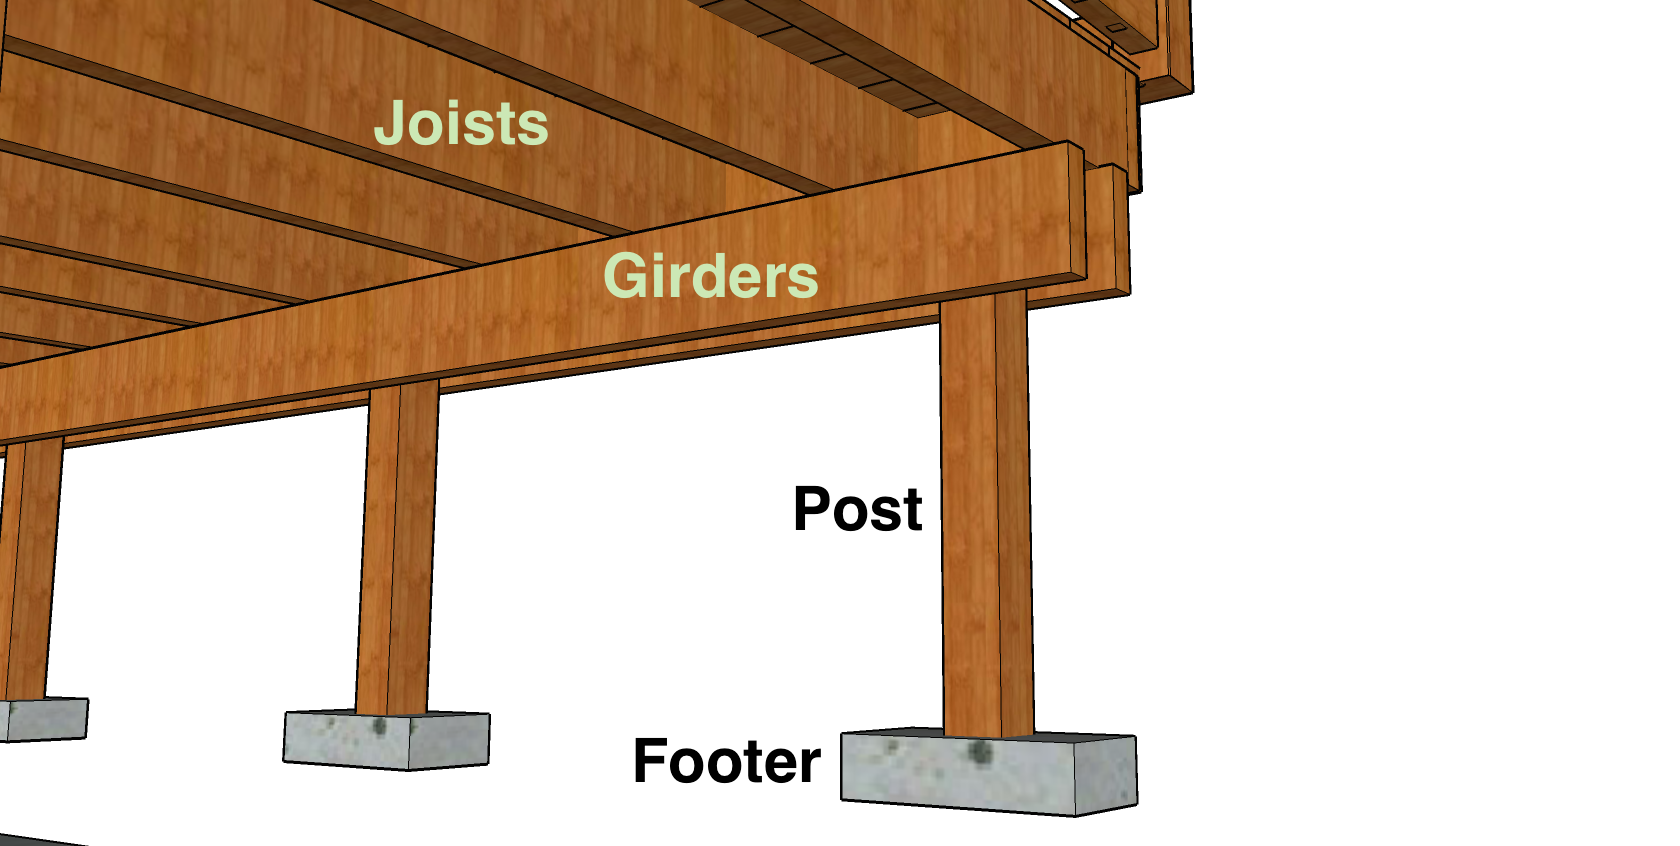 how to build a wooden deck diagram